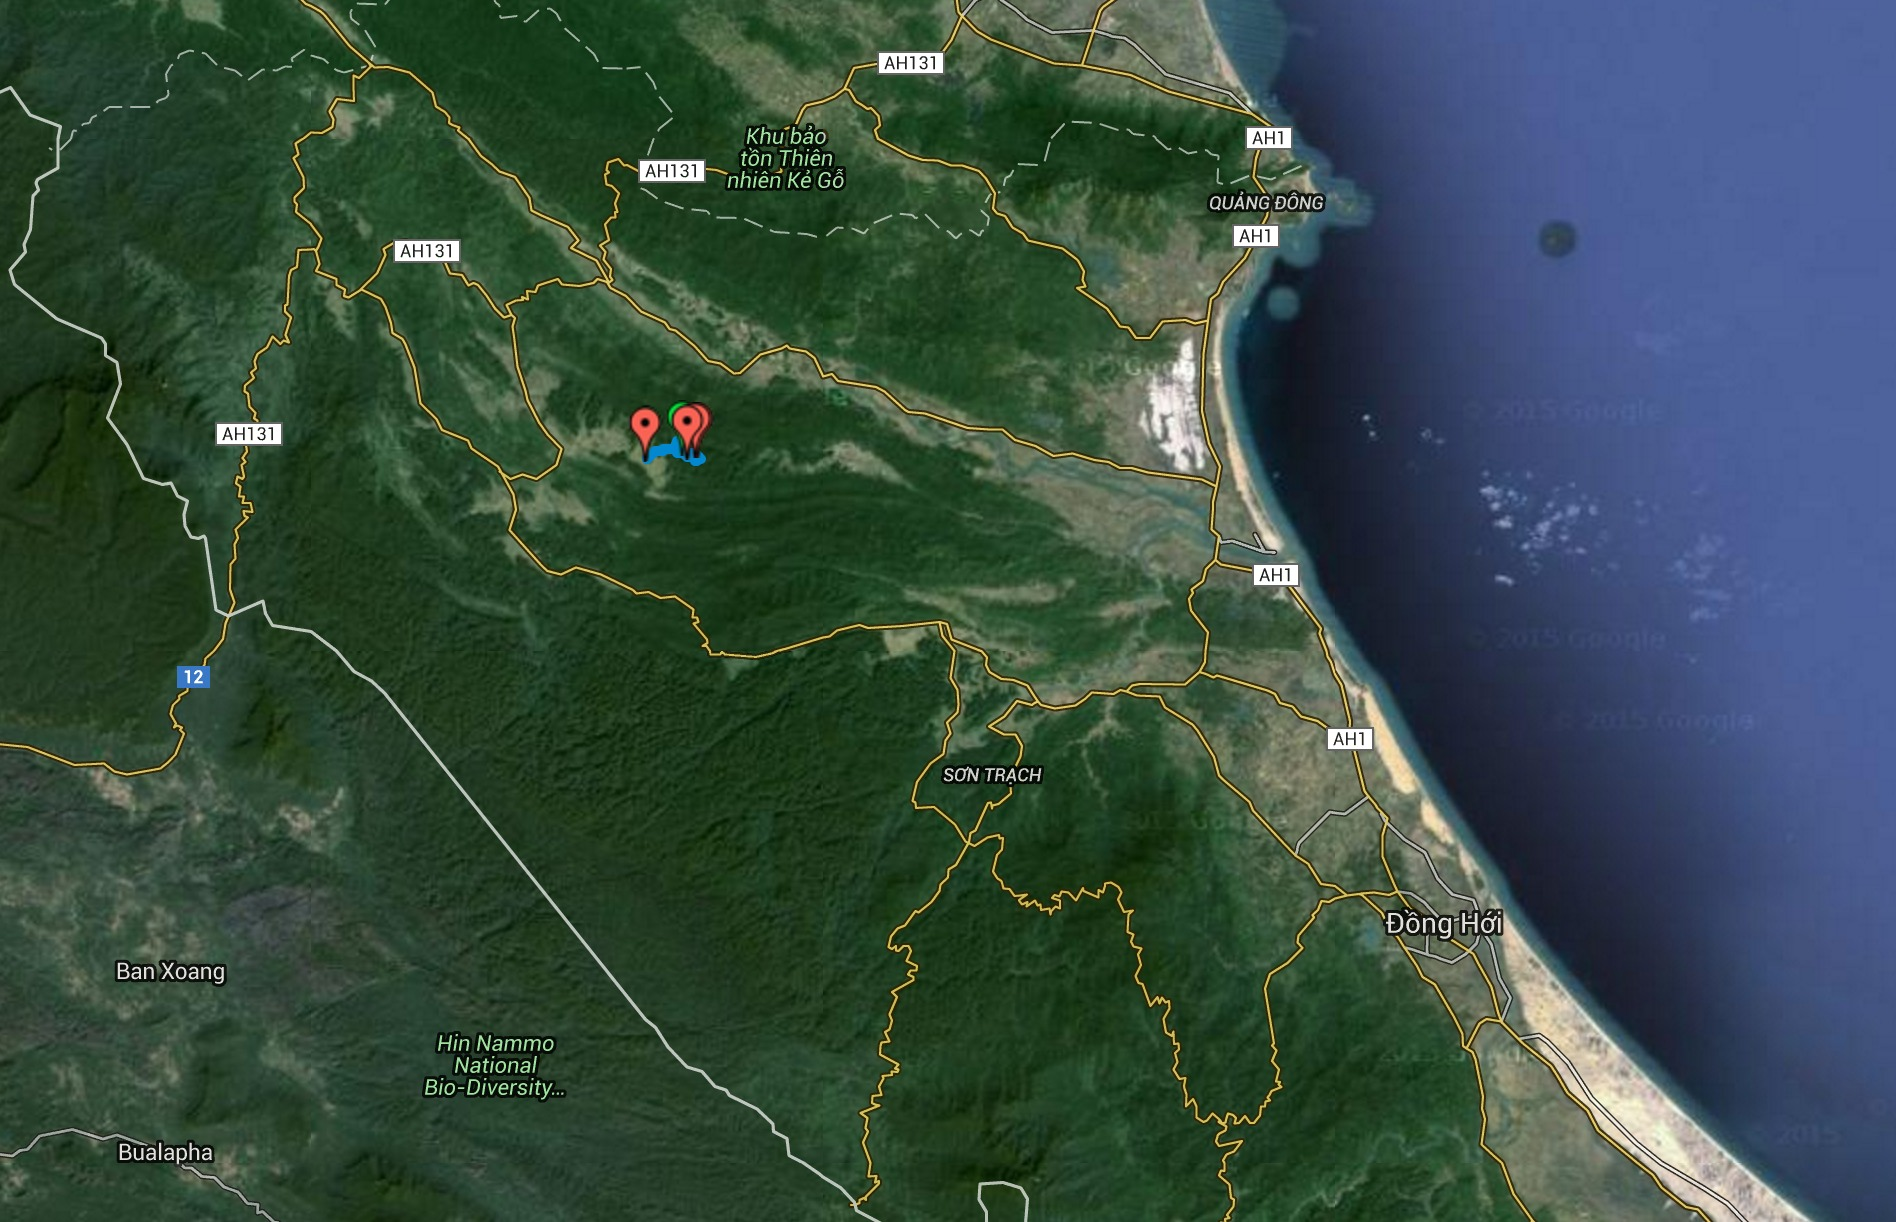 Phong Nha Caving - Satellite (zoomed out)